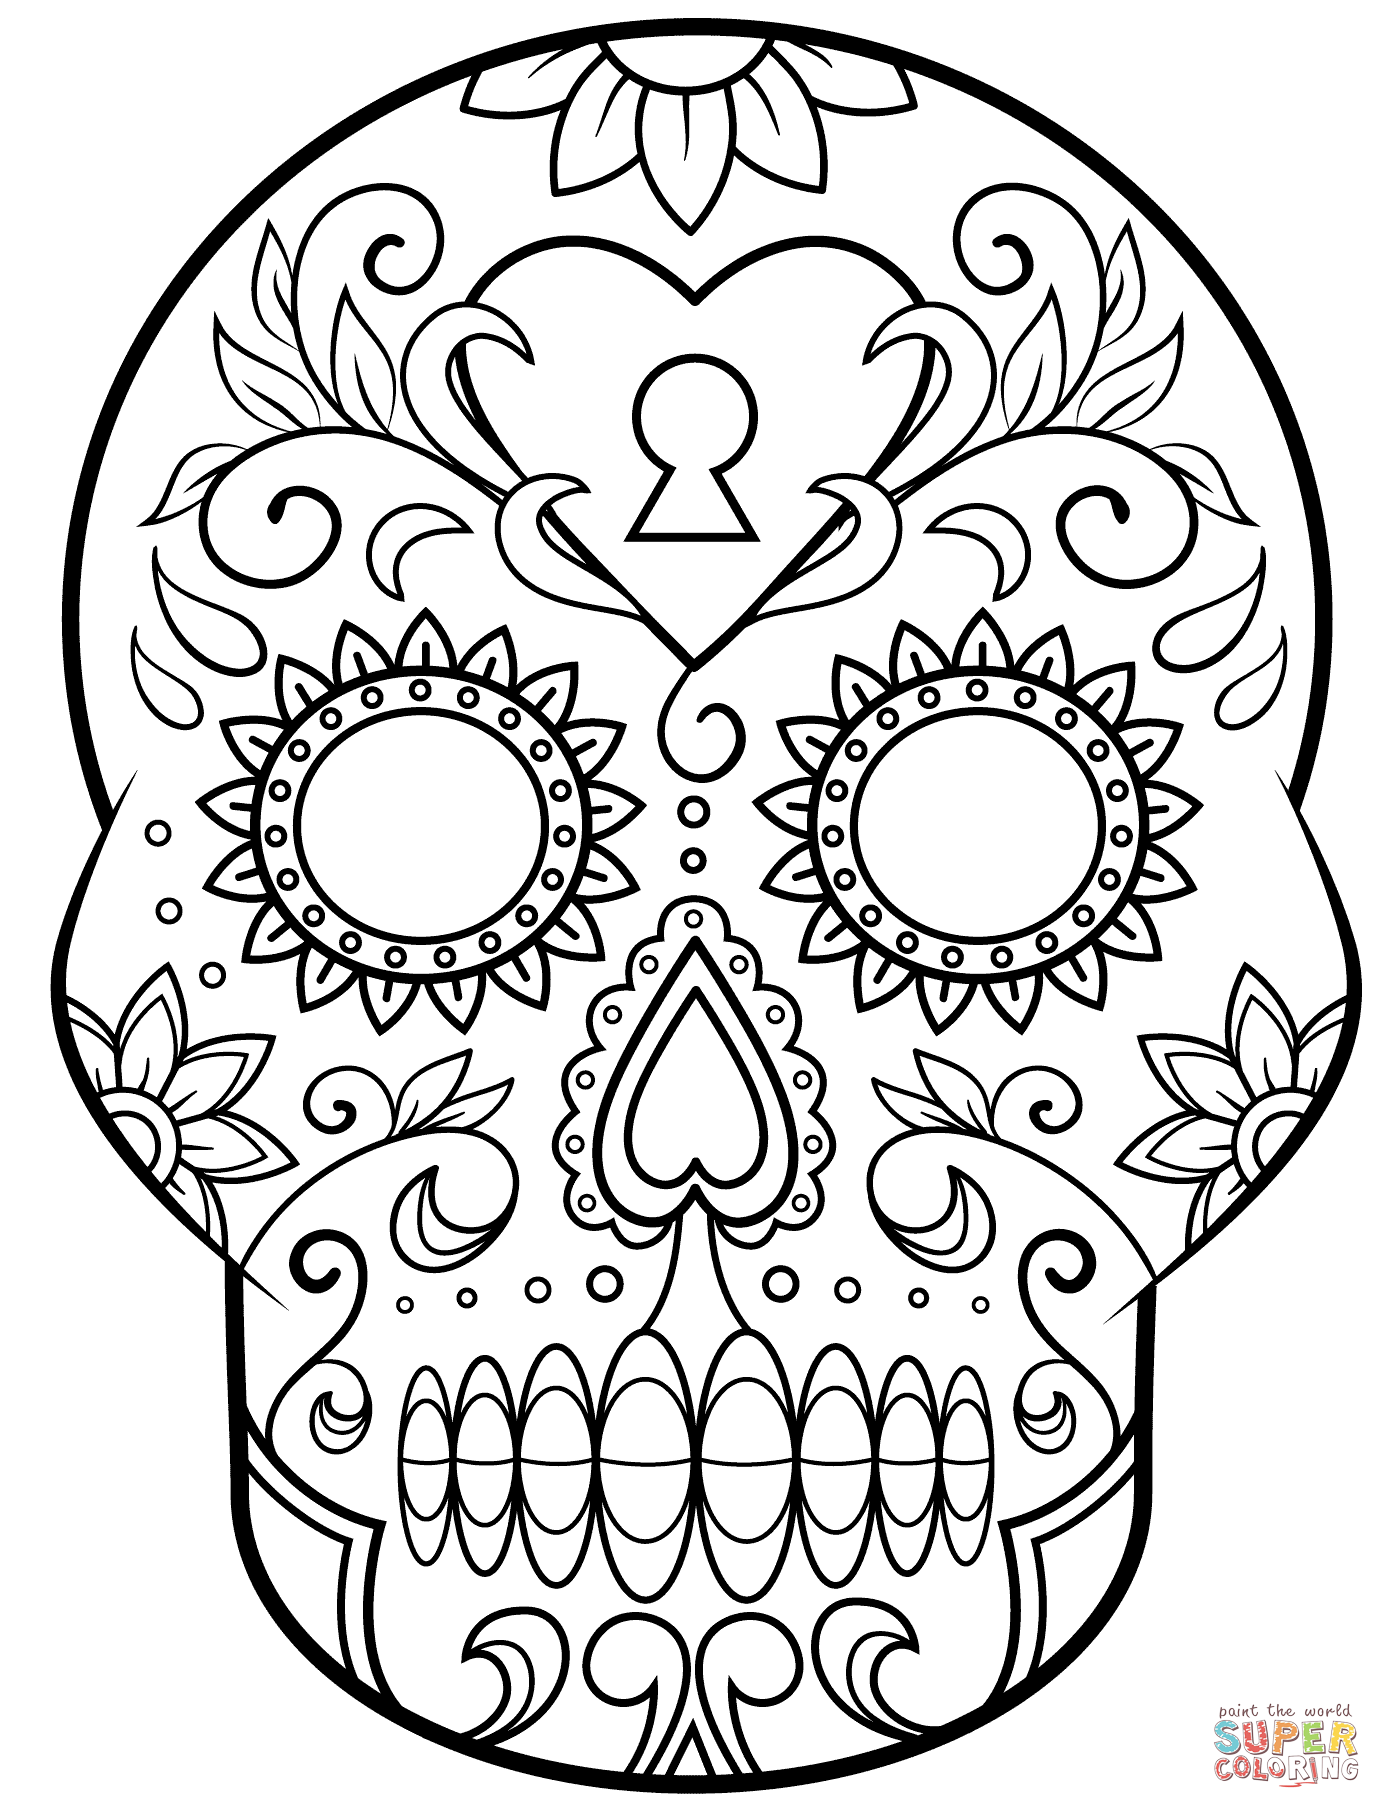 coloring printable day of the dead free printable day of the dead coloring pages best the printable dead of coloring day